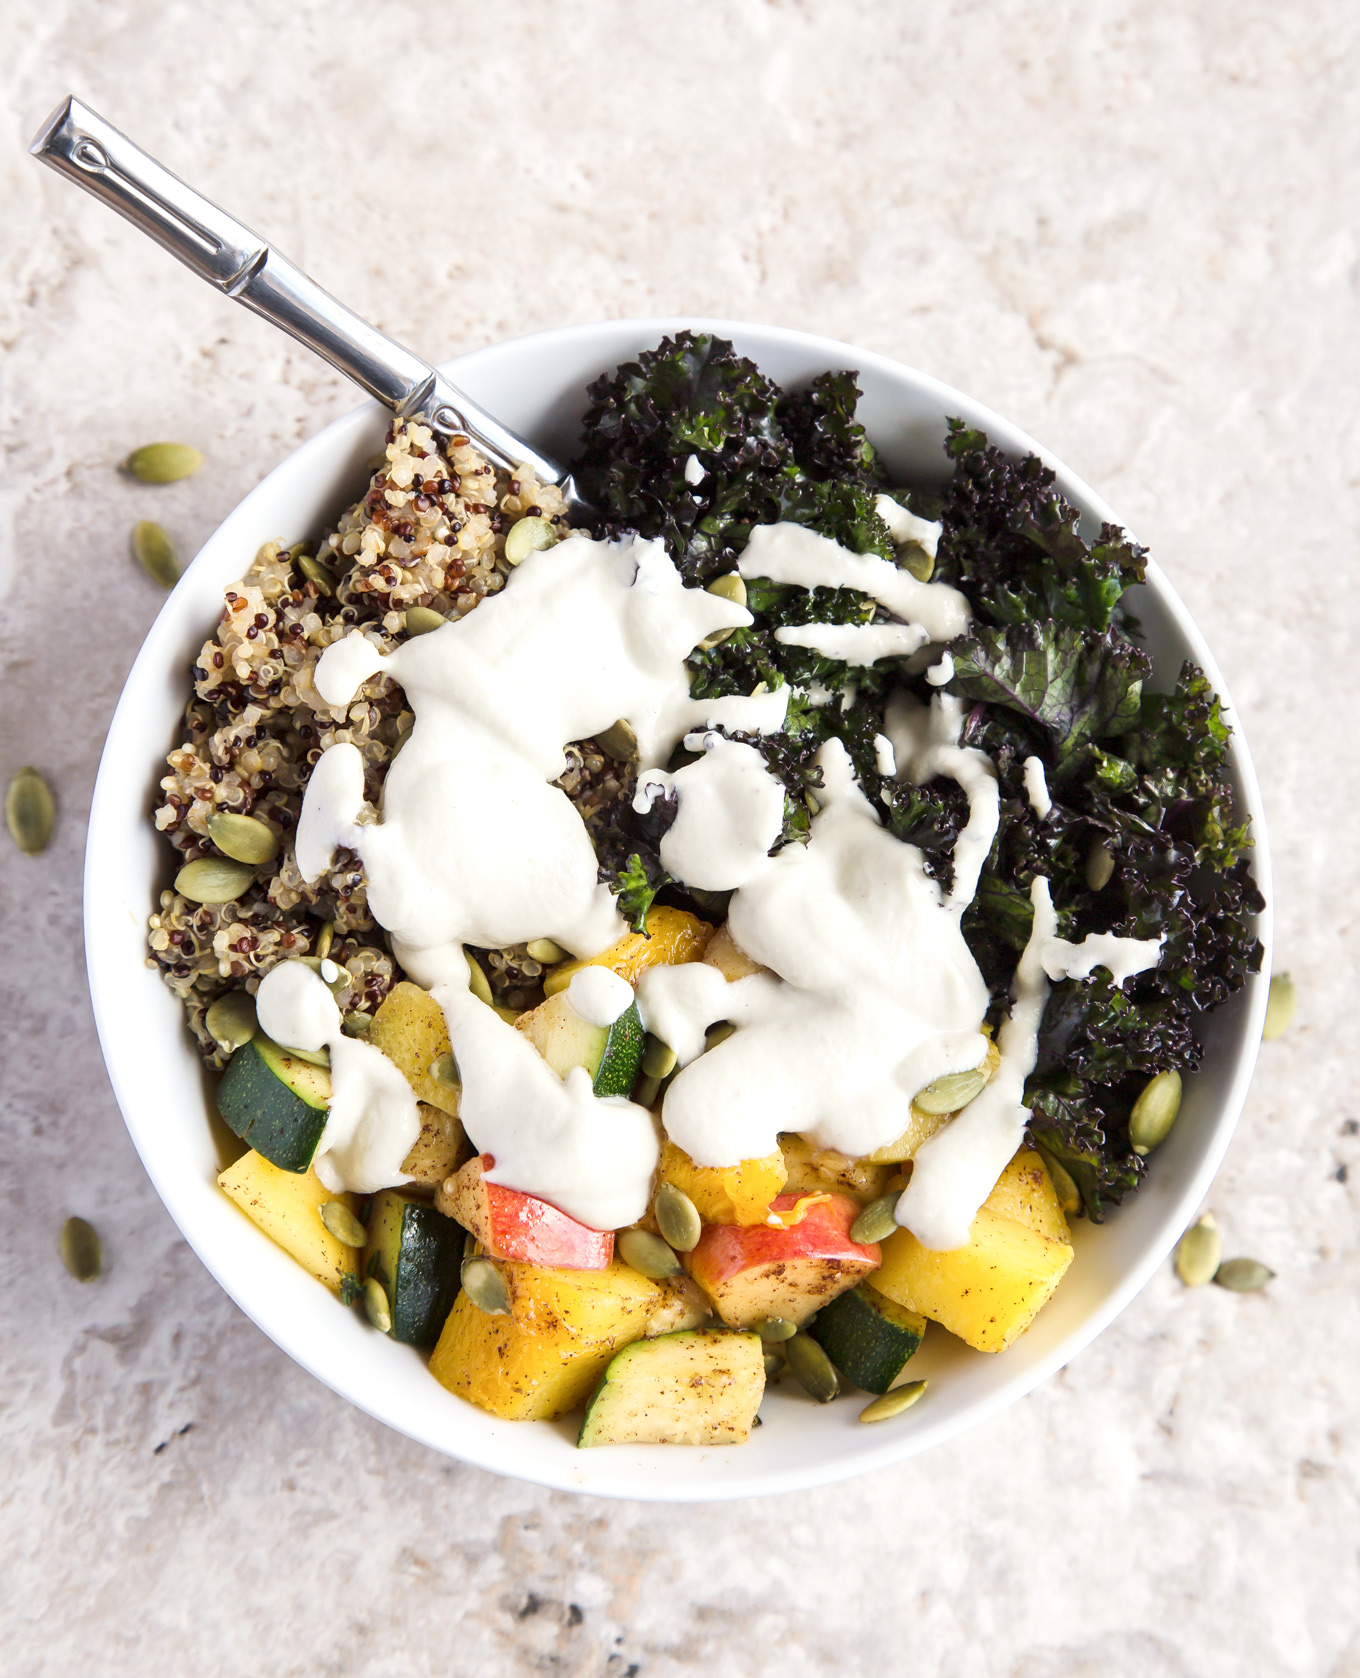 Fall Glow Buddha Bowl with Garlic Cashew Sauce - healthy, nourishing, vegan, gluten free recipe.